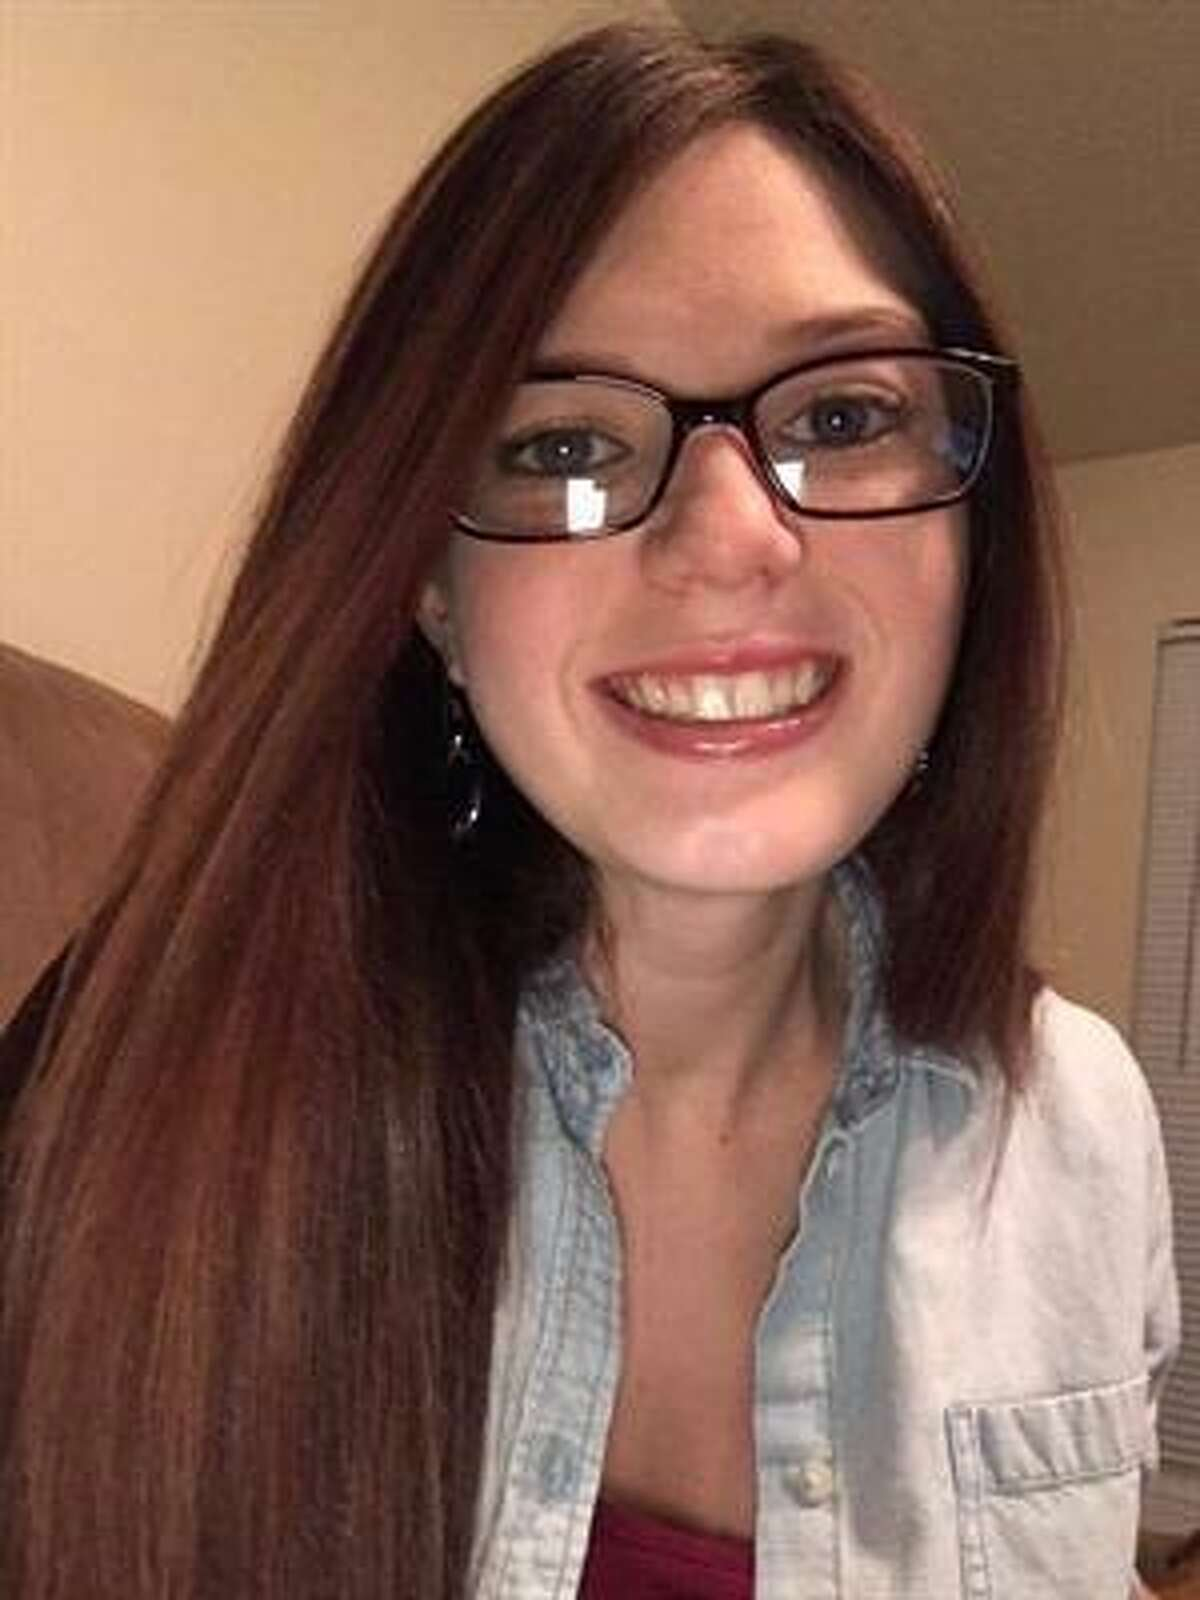 Kera Teel, 19, was seven months pregnant when she was shot outside Sienna Apartment Homes around 1:50 a.m. on June 6.Her daughter,Kyndal Teel died after her birth at a Beaumont hospital.